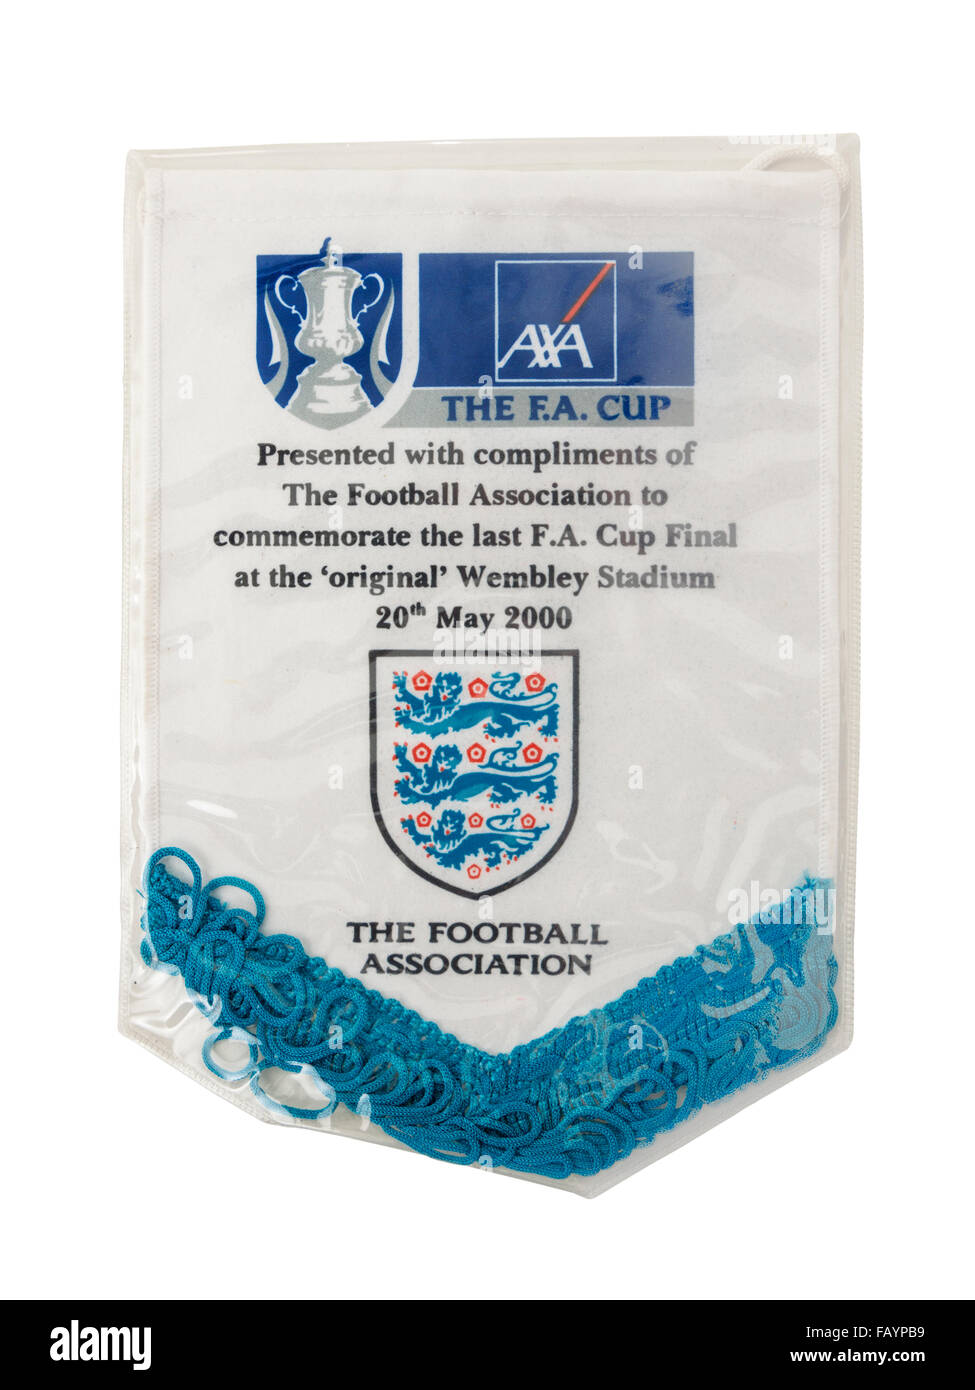 Memento from the last ever F.A. Cup Final played at the original Wembley Stadium on 20th May 2000 - Stock Image